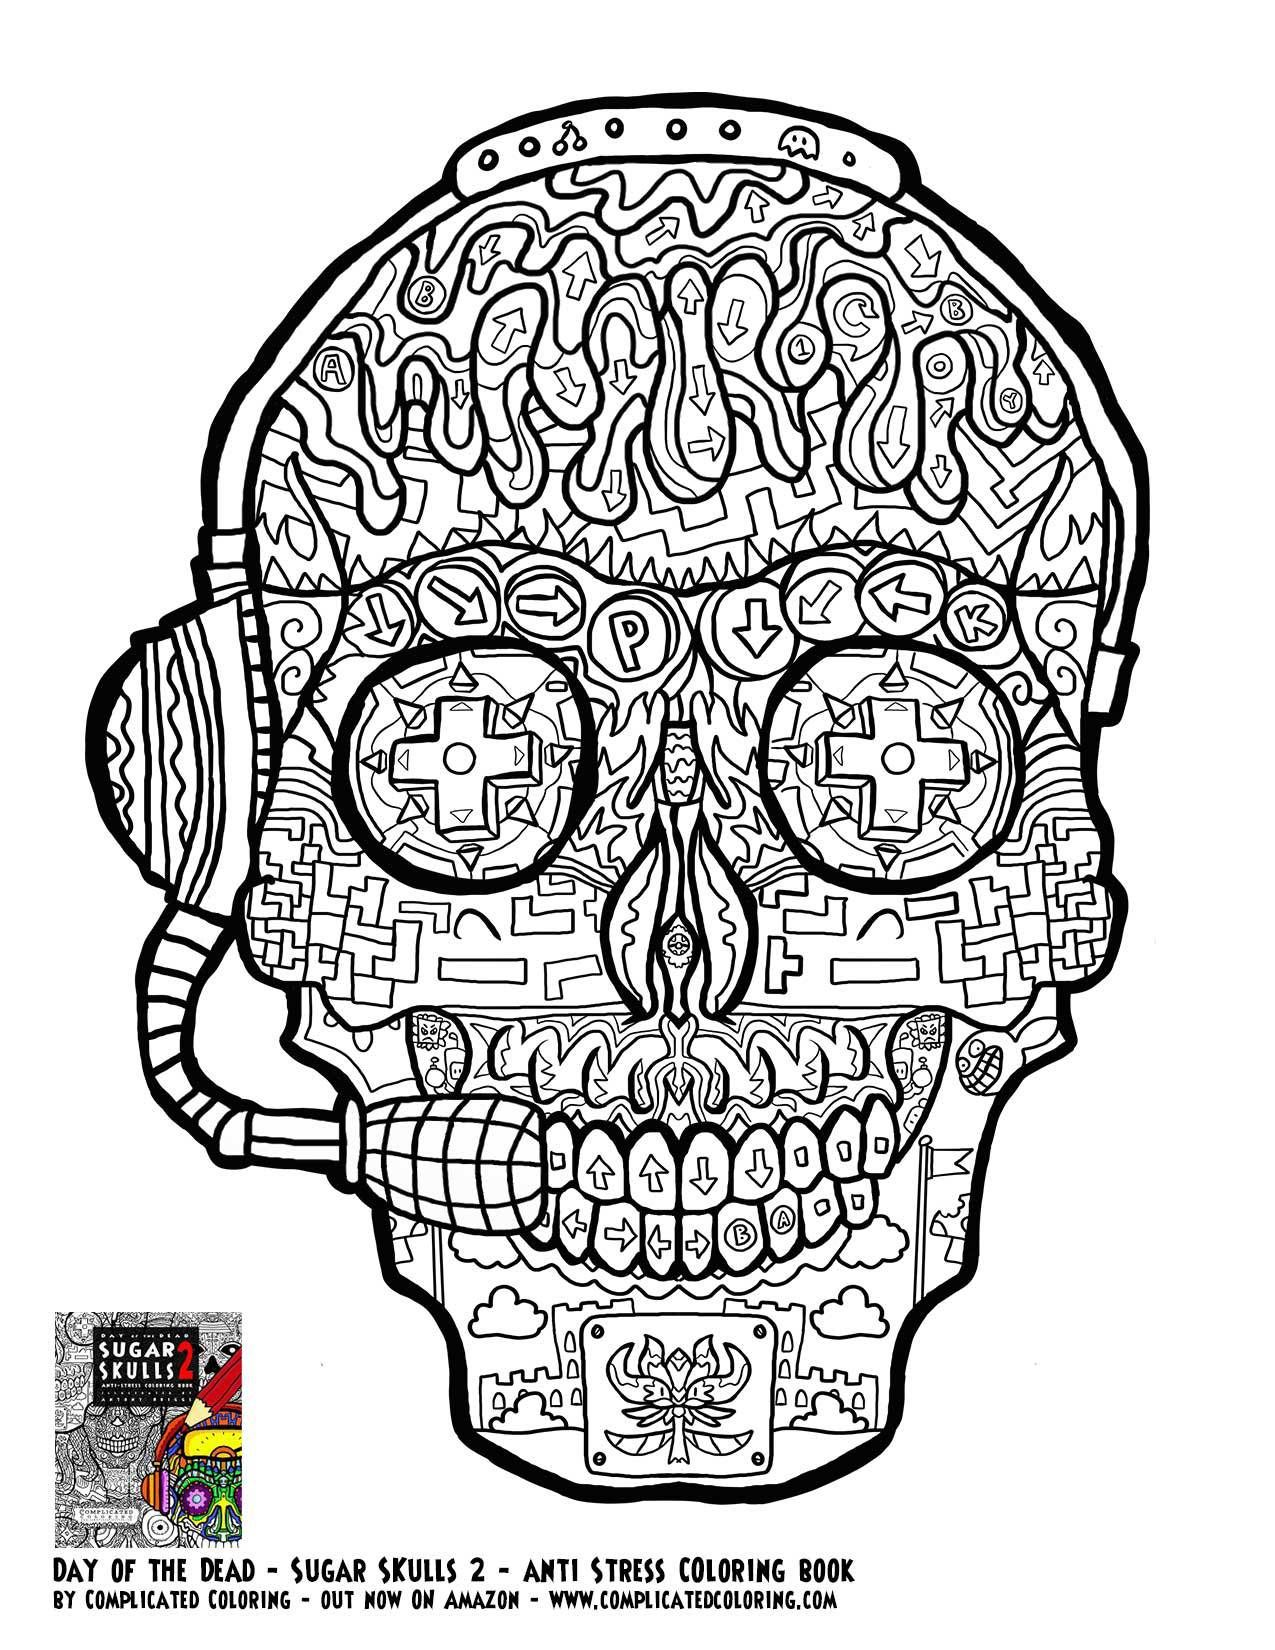 Gamer Sugar Skull - Free Printable Coloring page - complicated ...